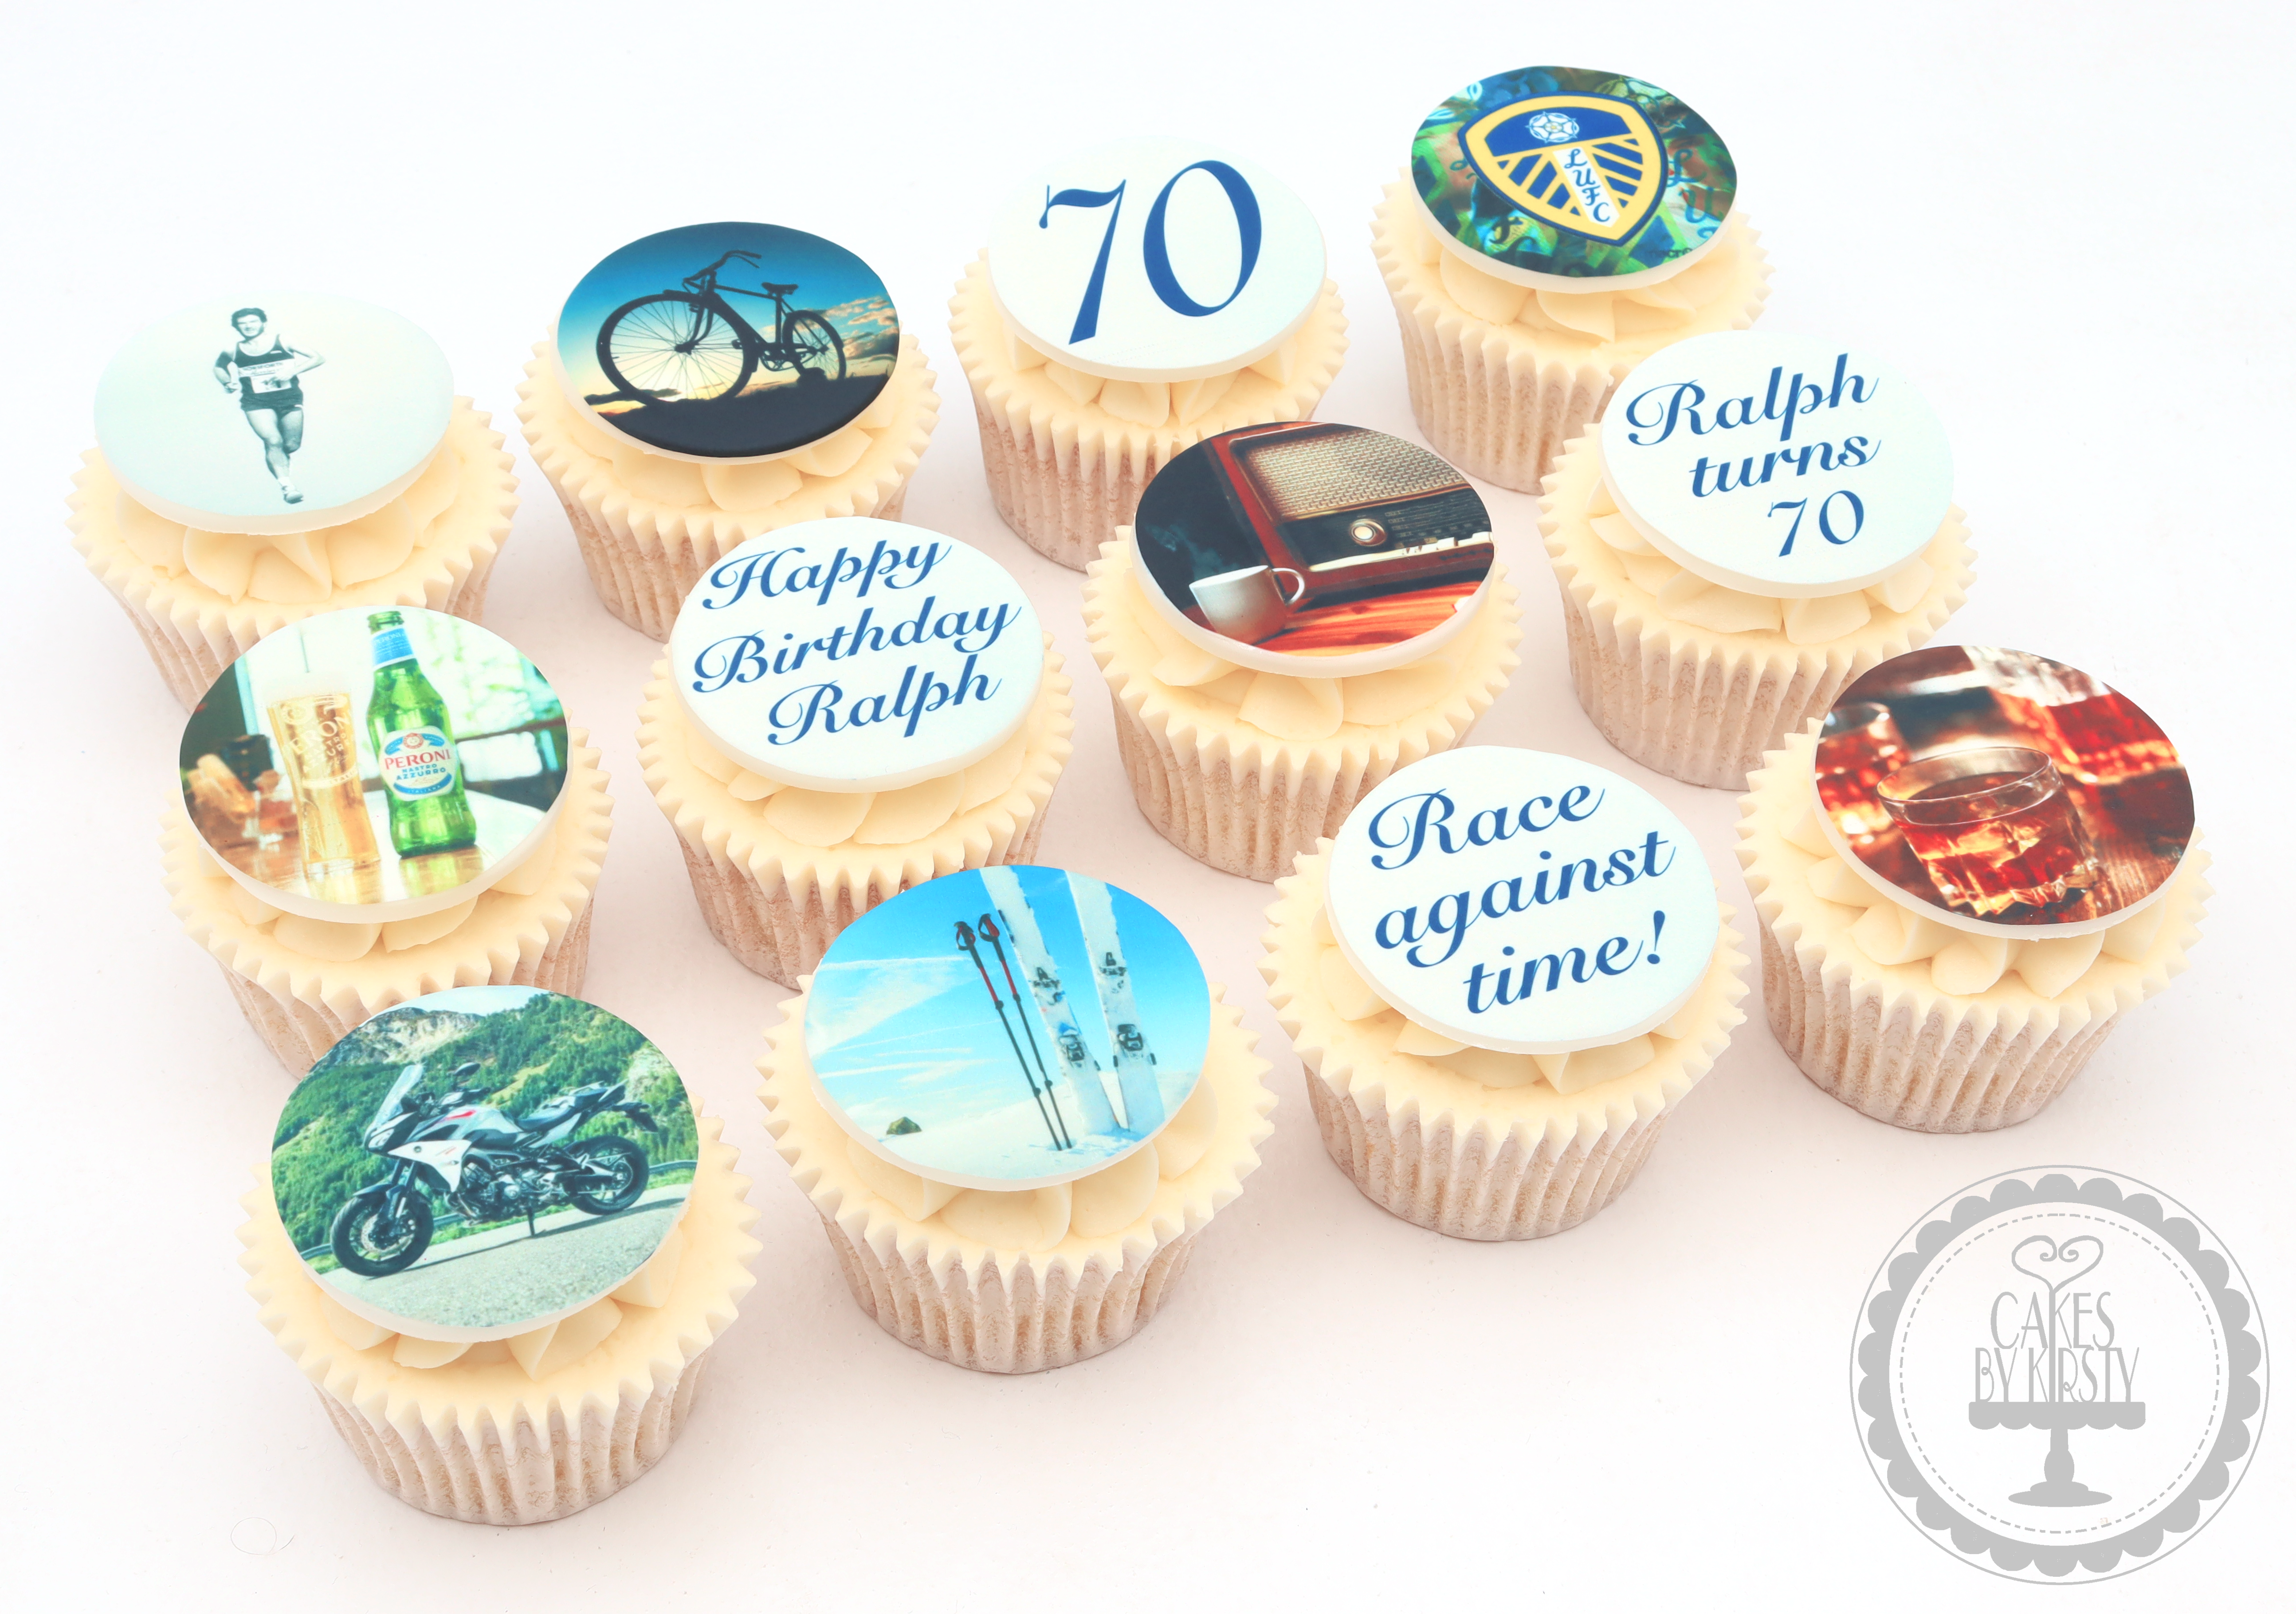 20190728 - Hobby 70th Birthday Cupcakes